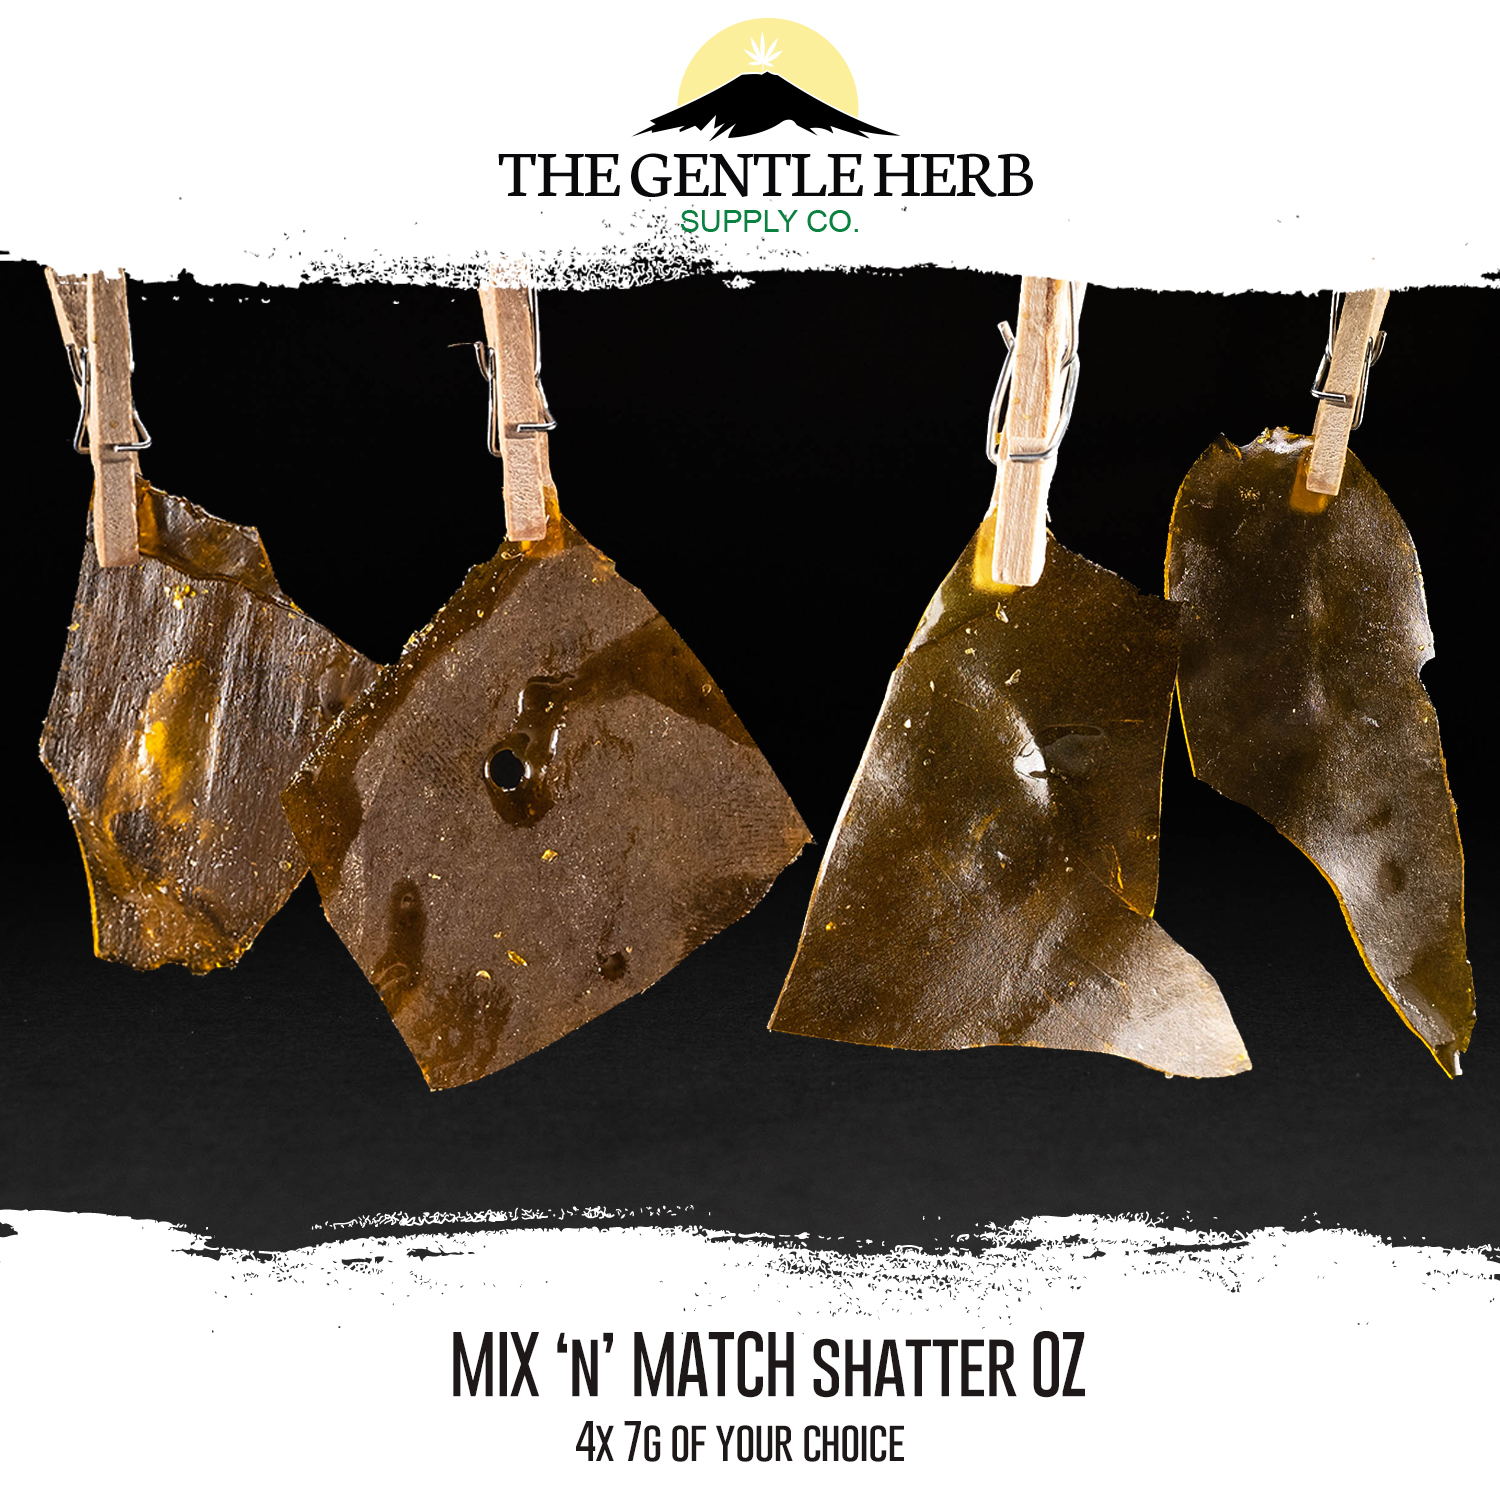 Mix n Match House Shatter Oz by The Gentle Herb - Image © 2018 The Gentle Herb. All Rights Reserved.